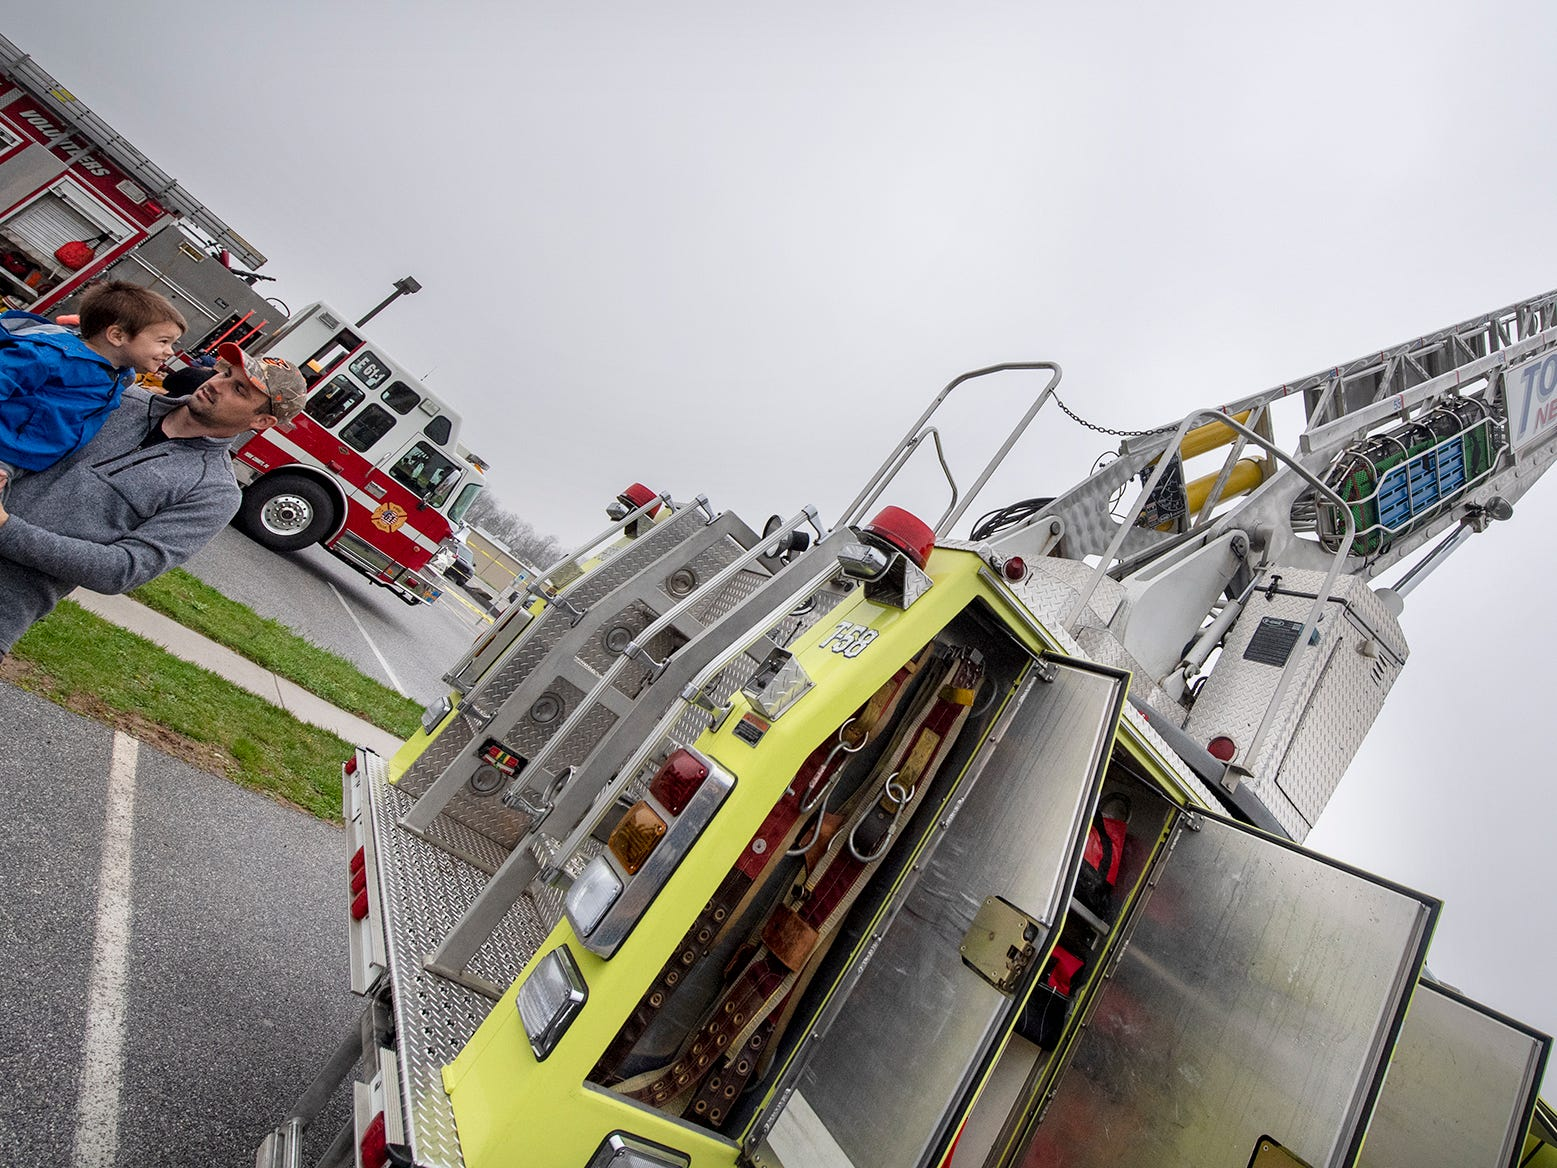 Tower 58 from New Freedom rises above the Truck Zoo at Paul Smith Library of Southern York County.